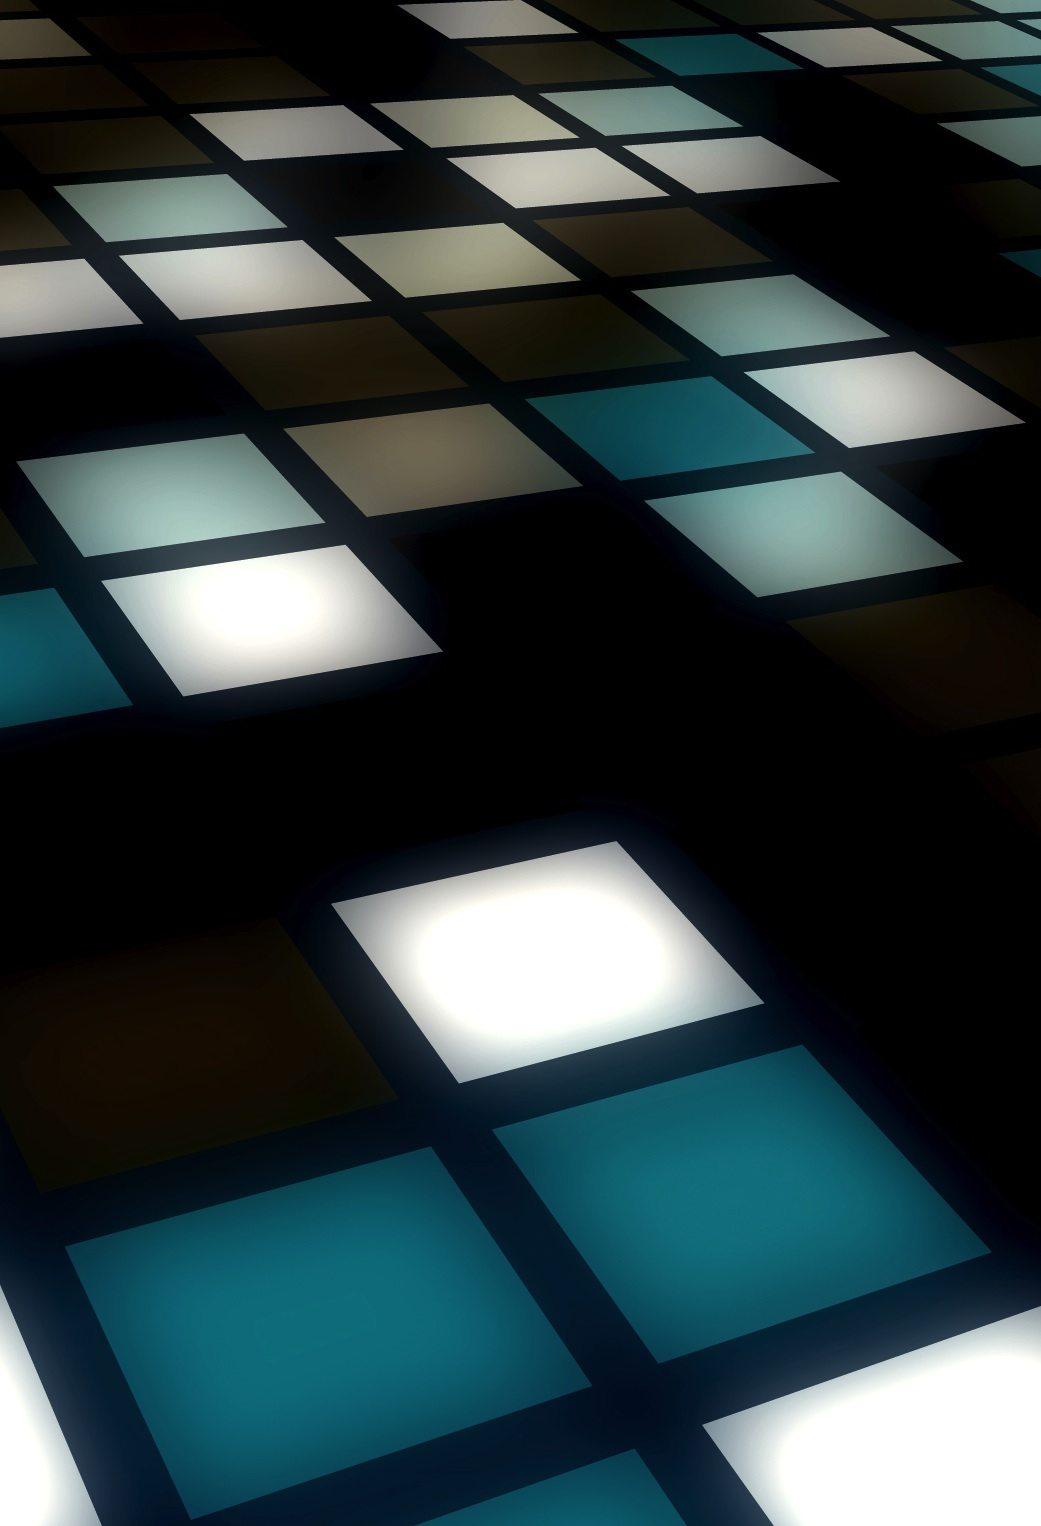 IPhone 5S Animated Wallpapers